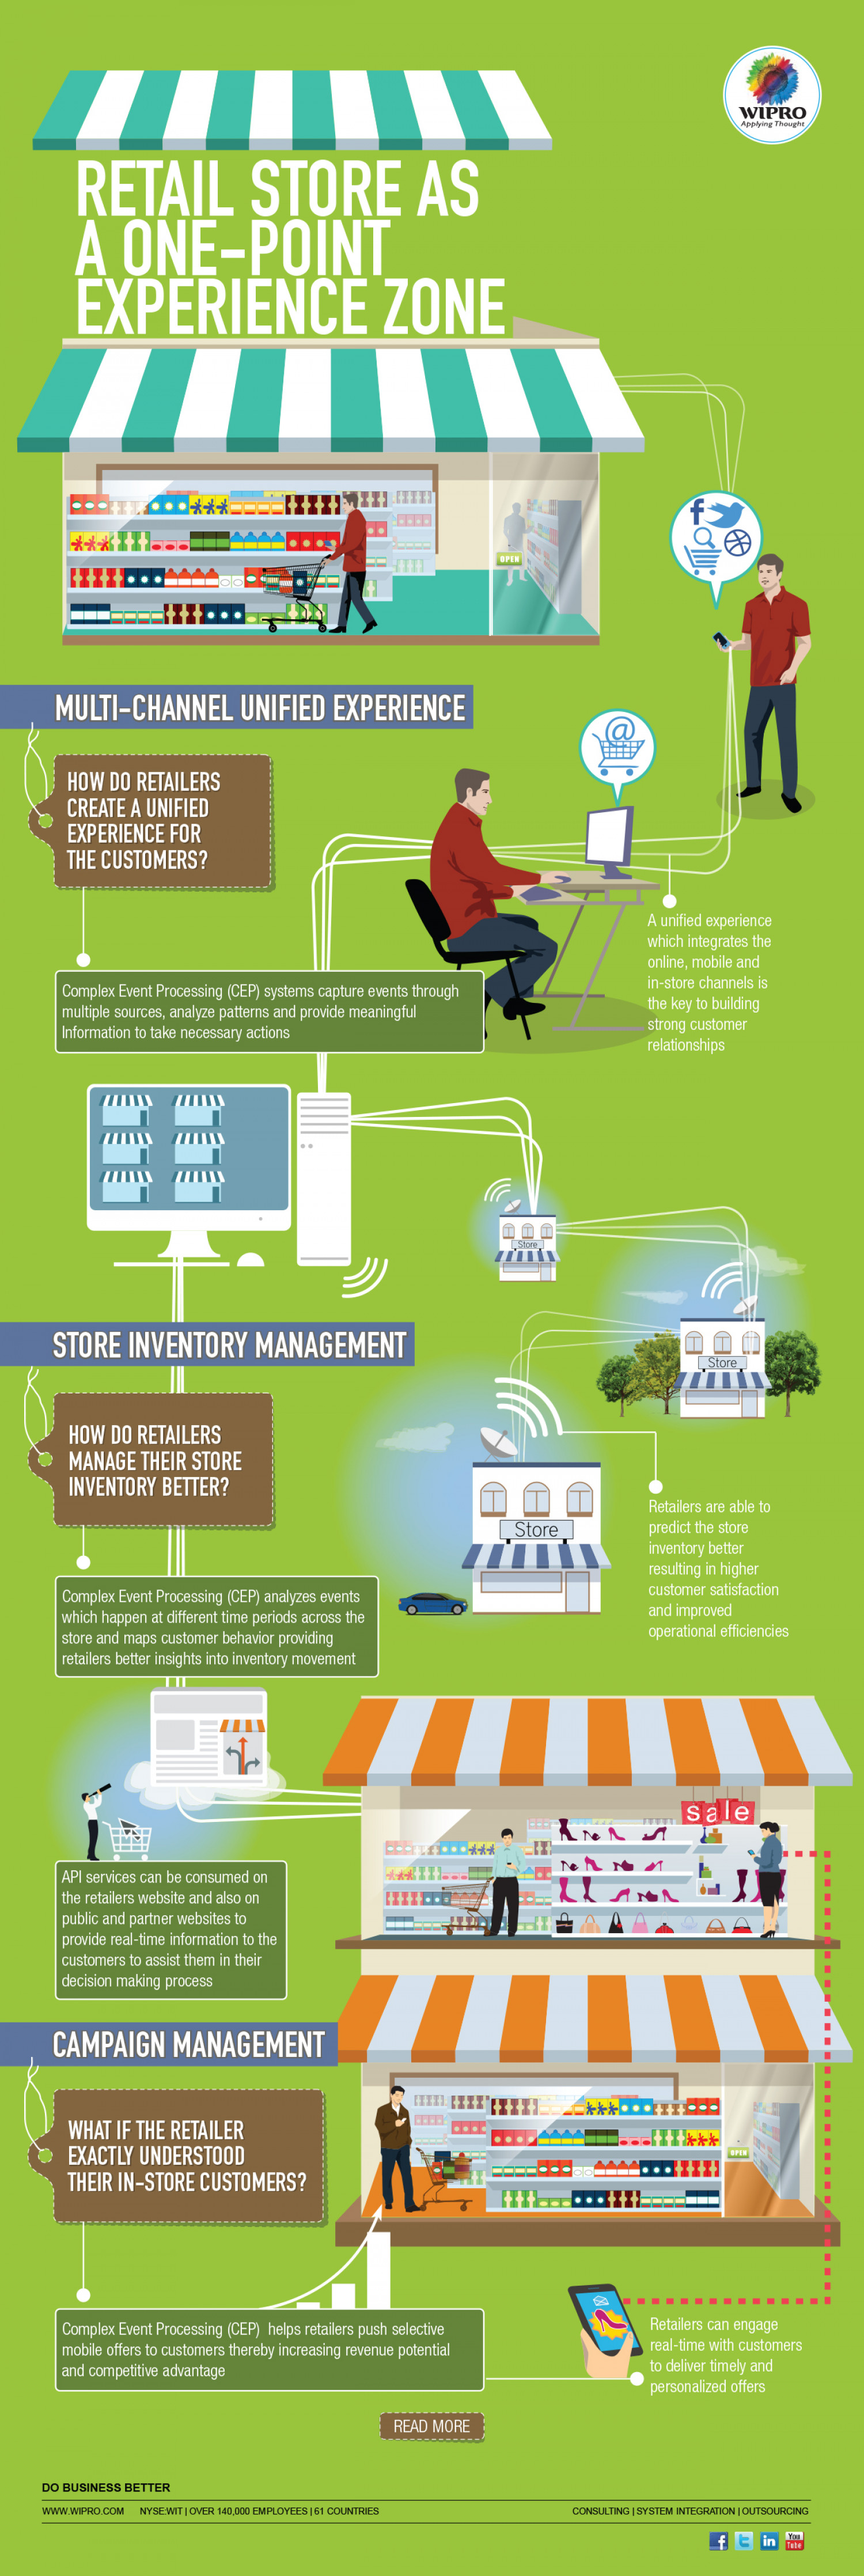 Retail Store as a One-point Experience Zone Infographic